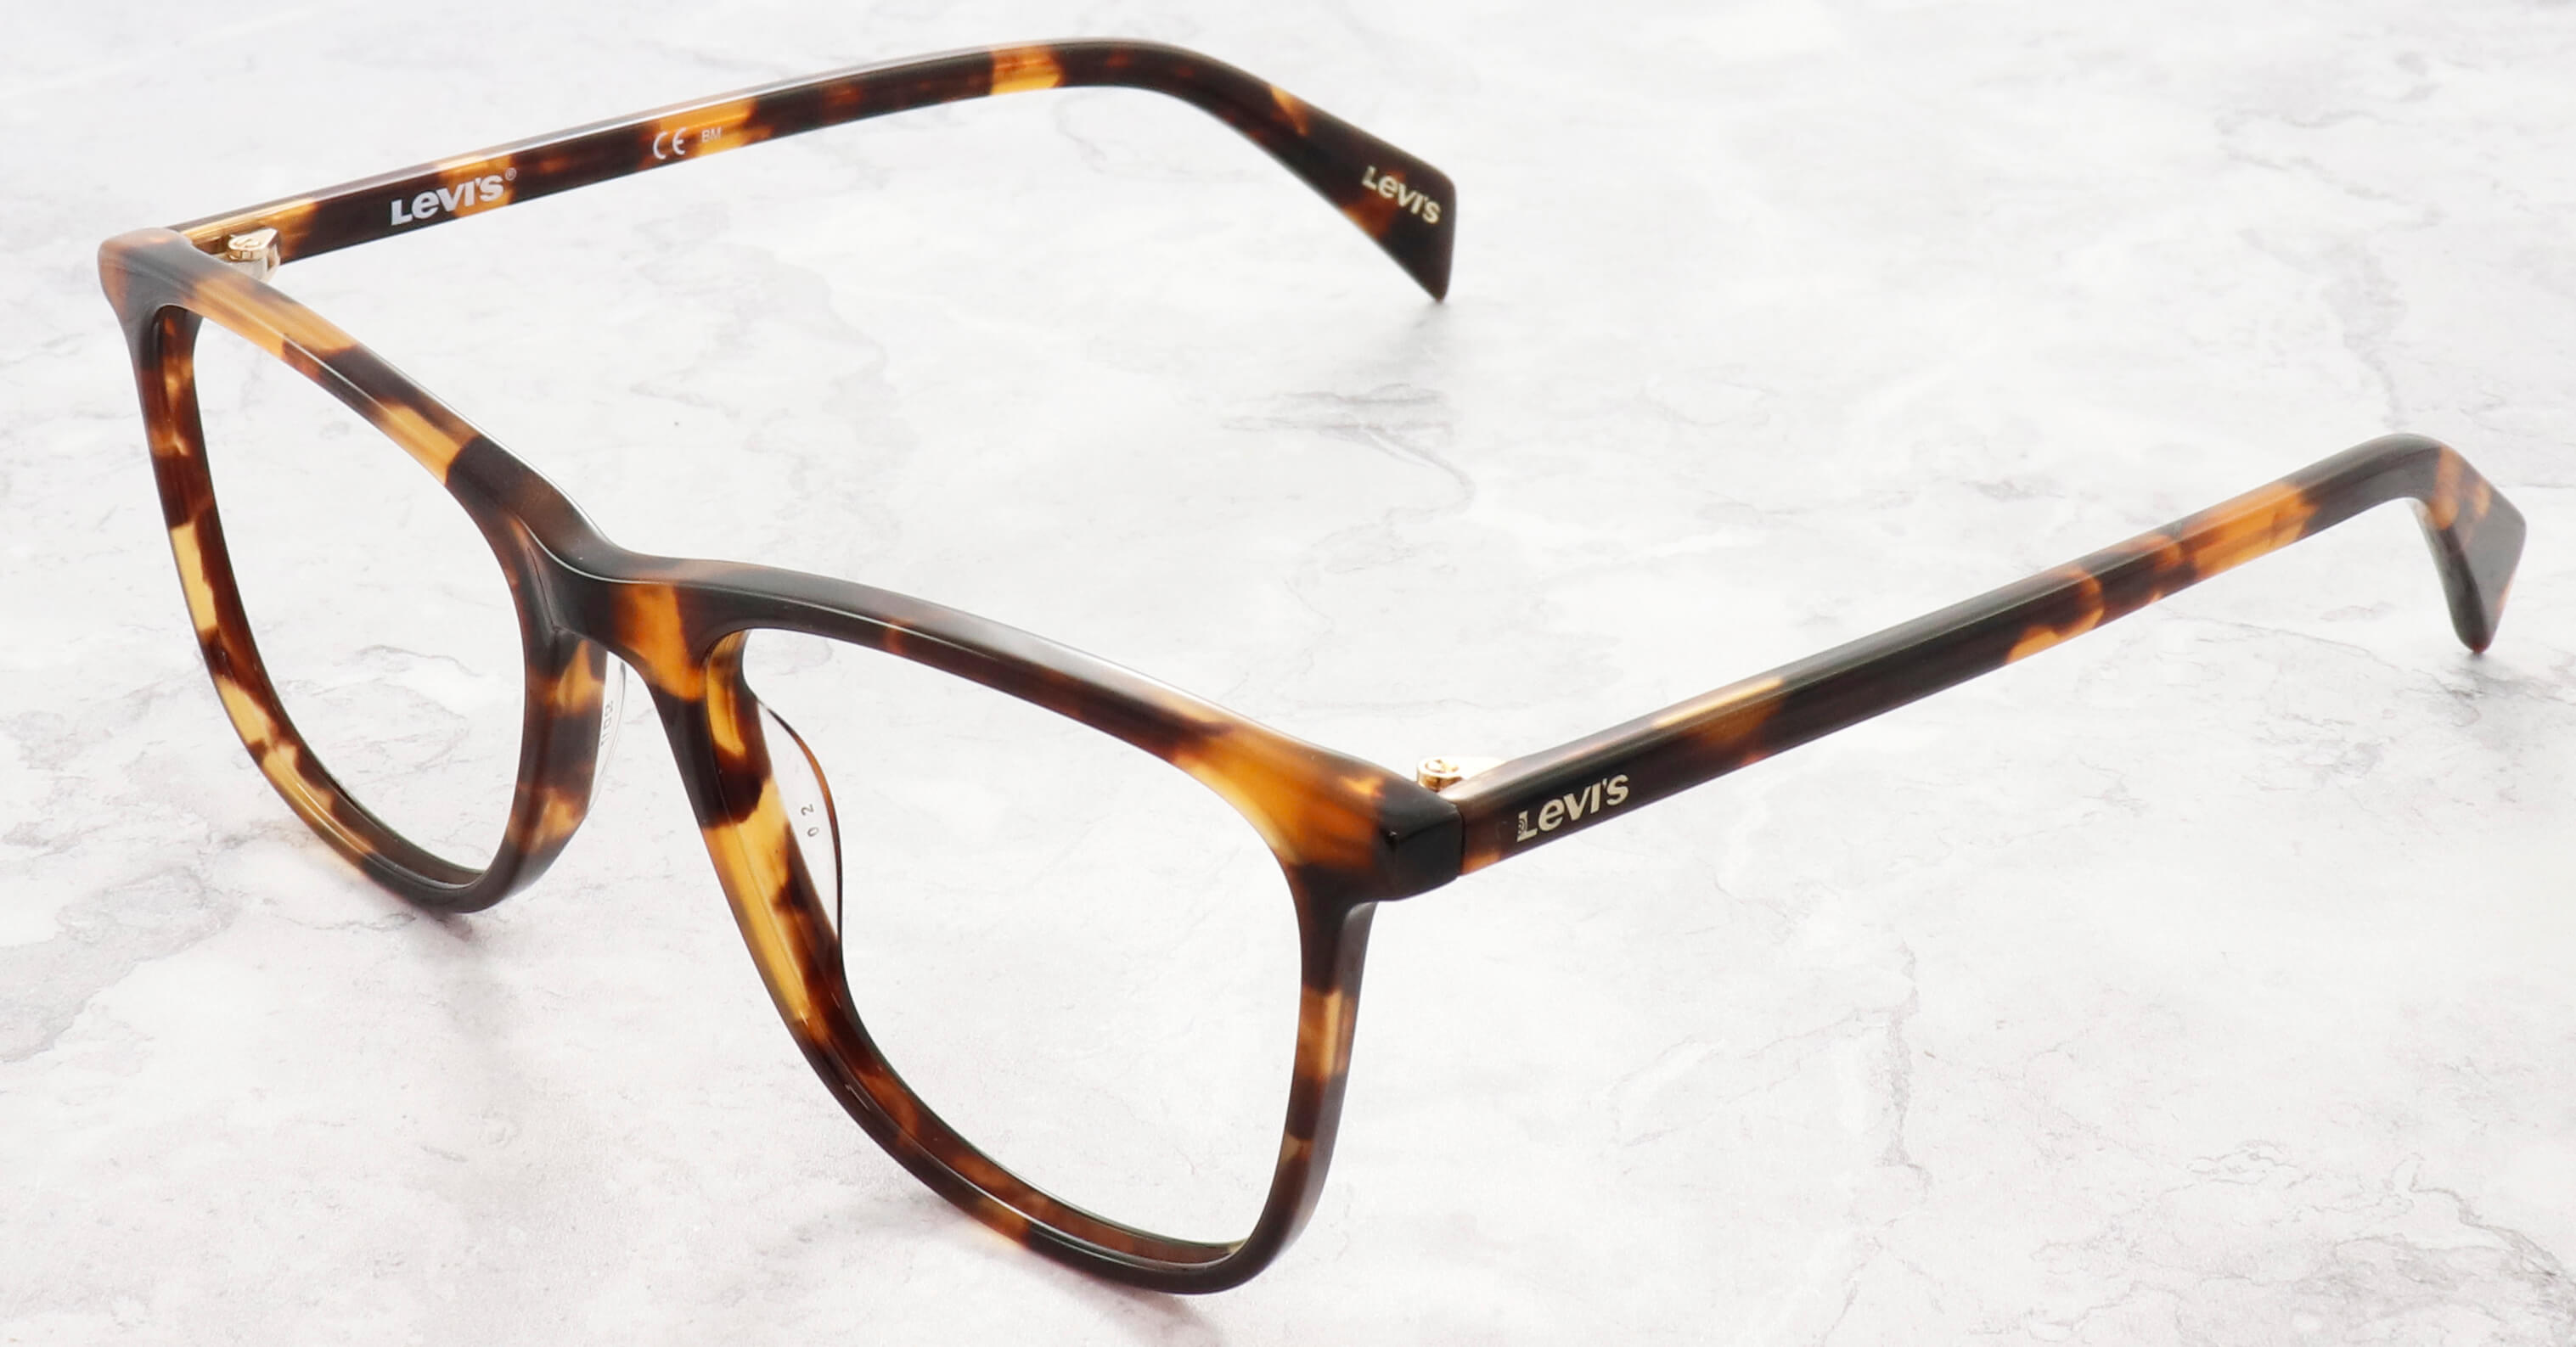 Vintage tortoiseshell for a timeless look.